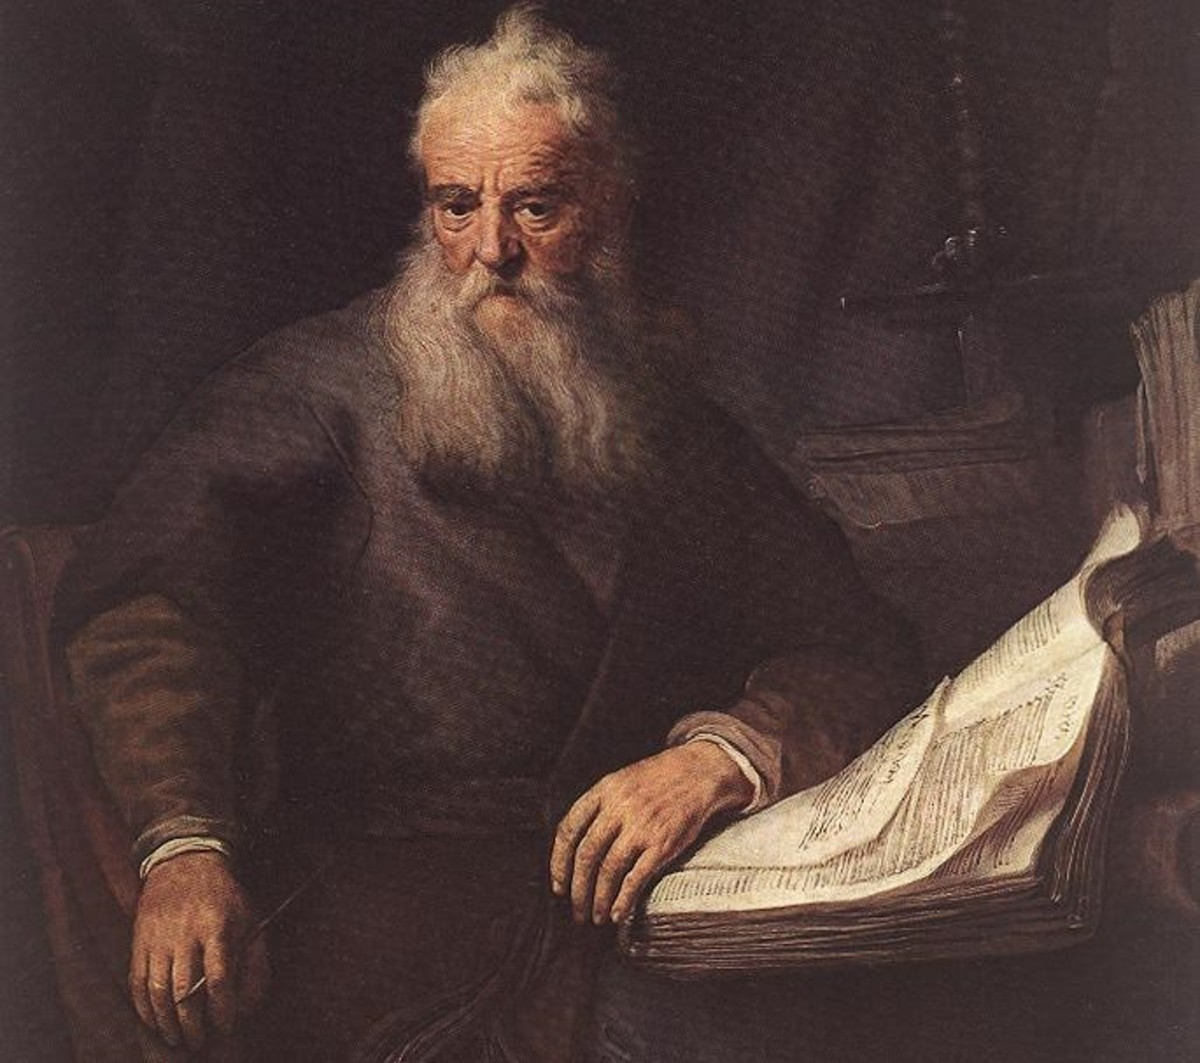 The Apostle Paul by Rembrandt